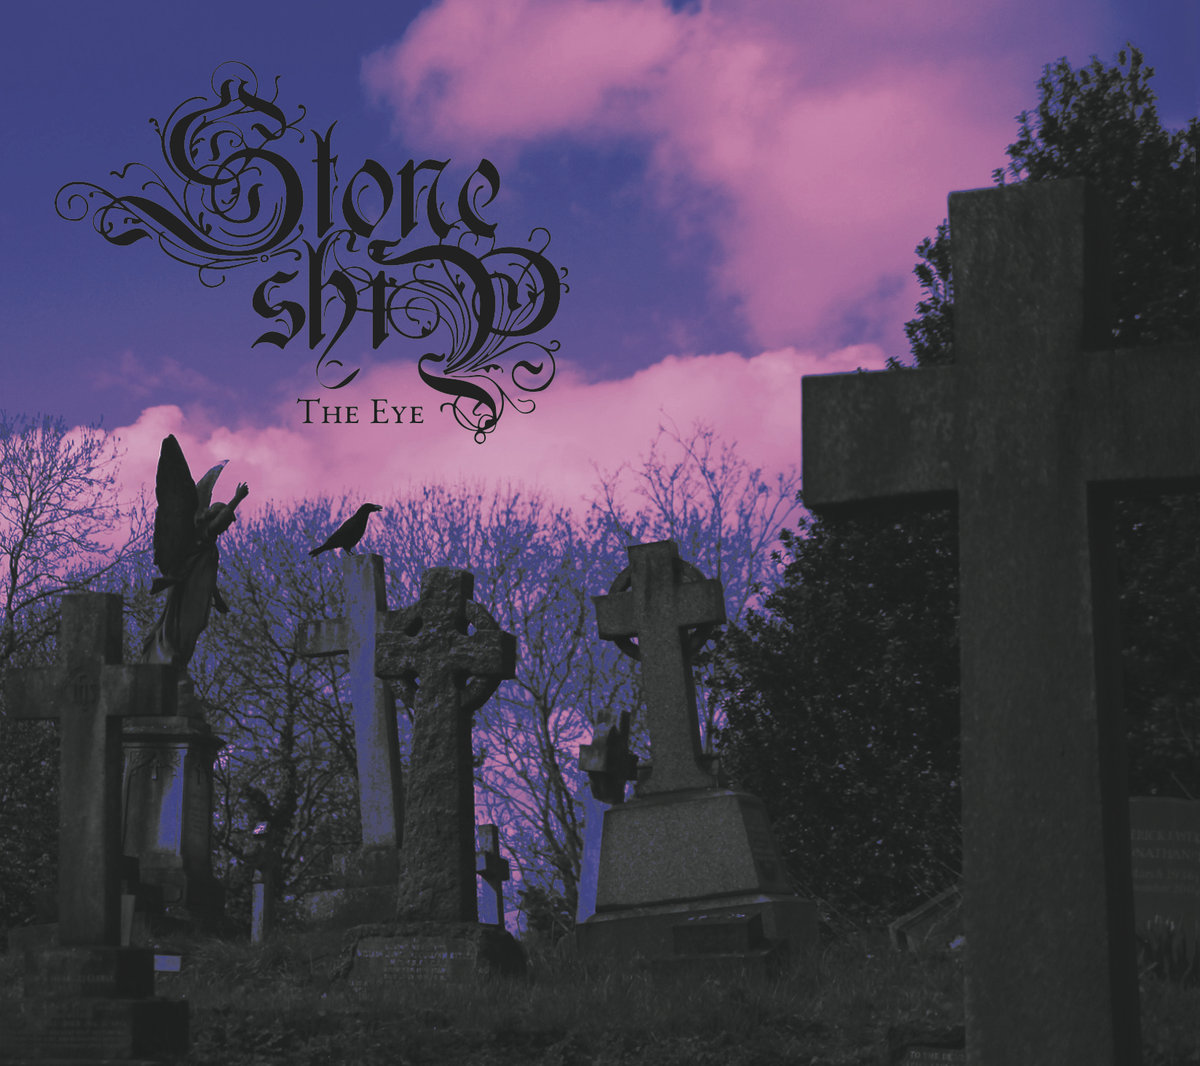 Stone Ship – The Eye